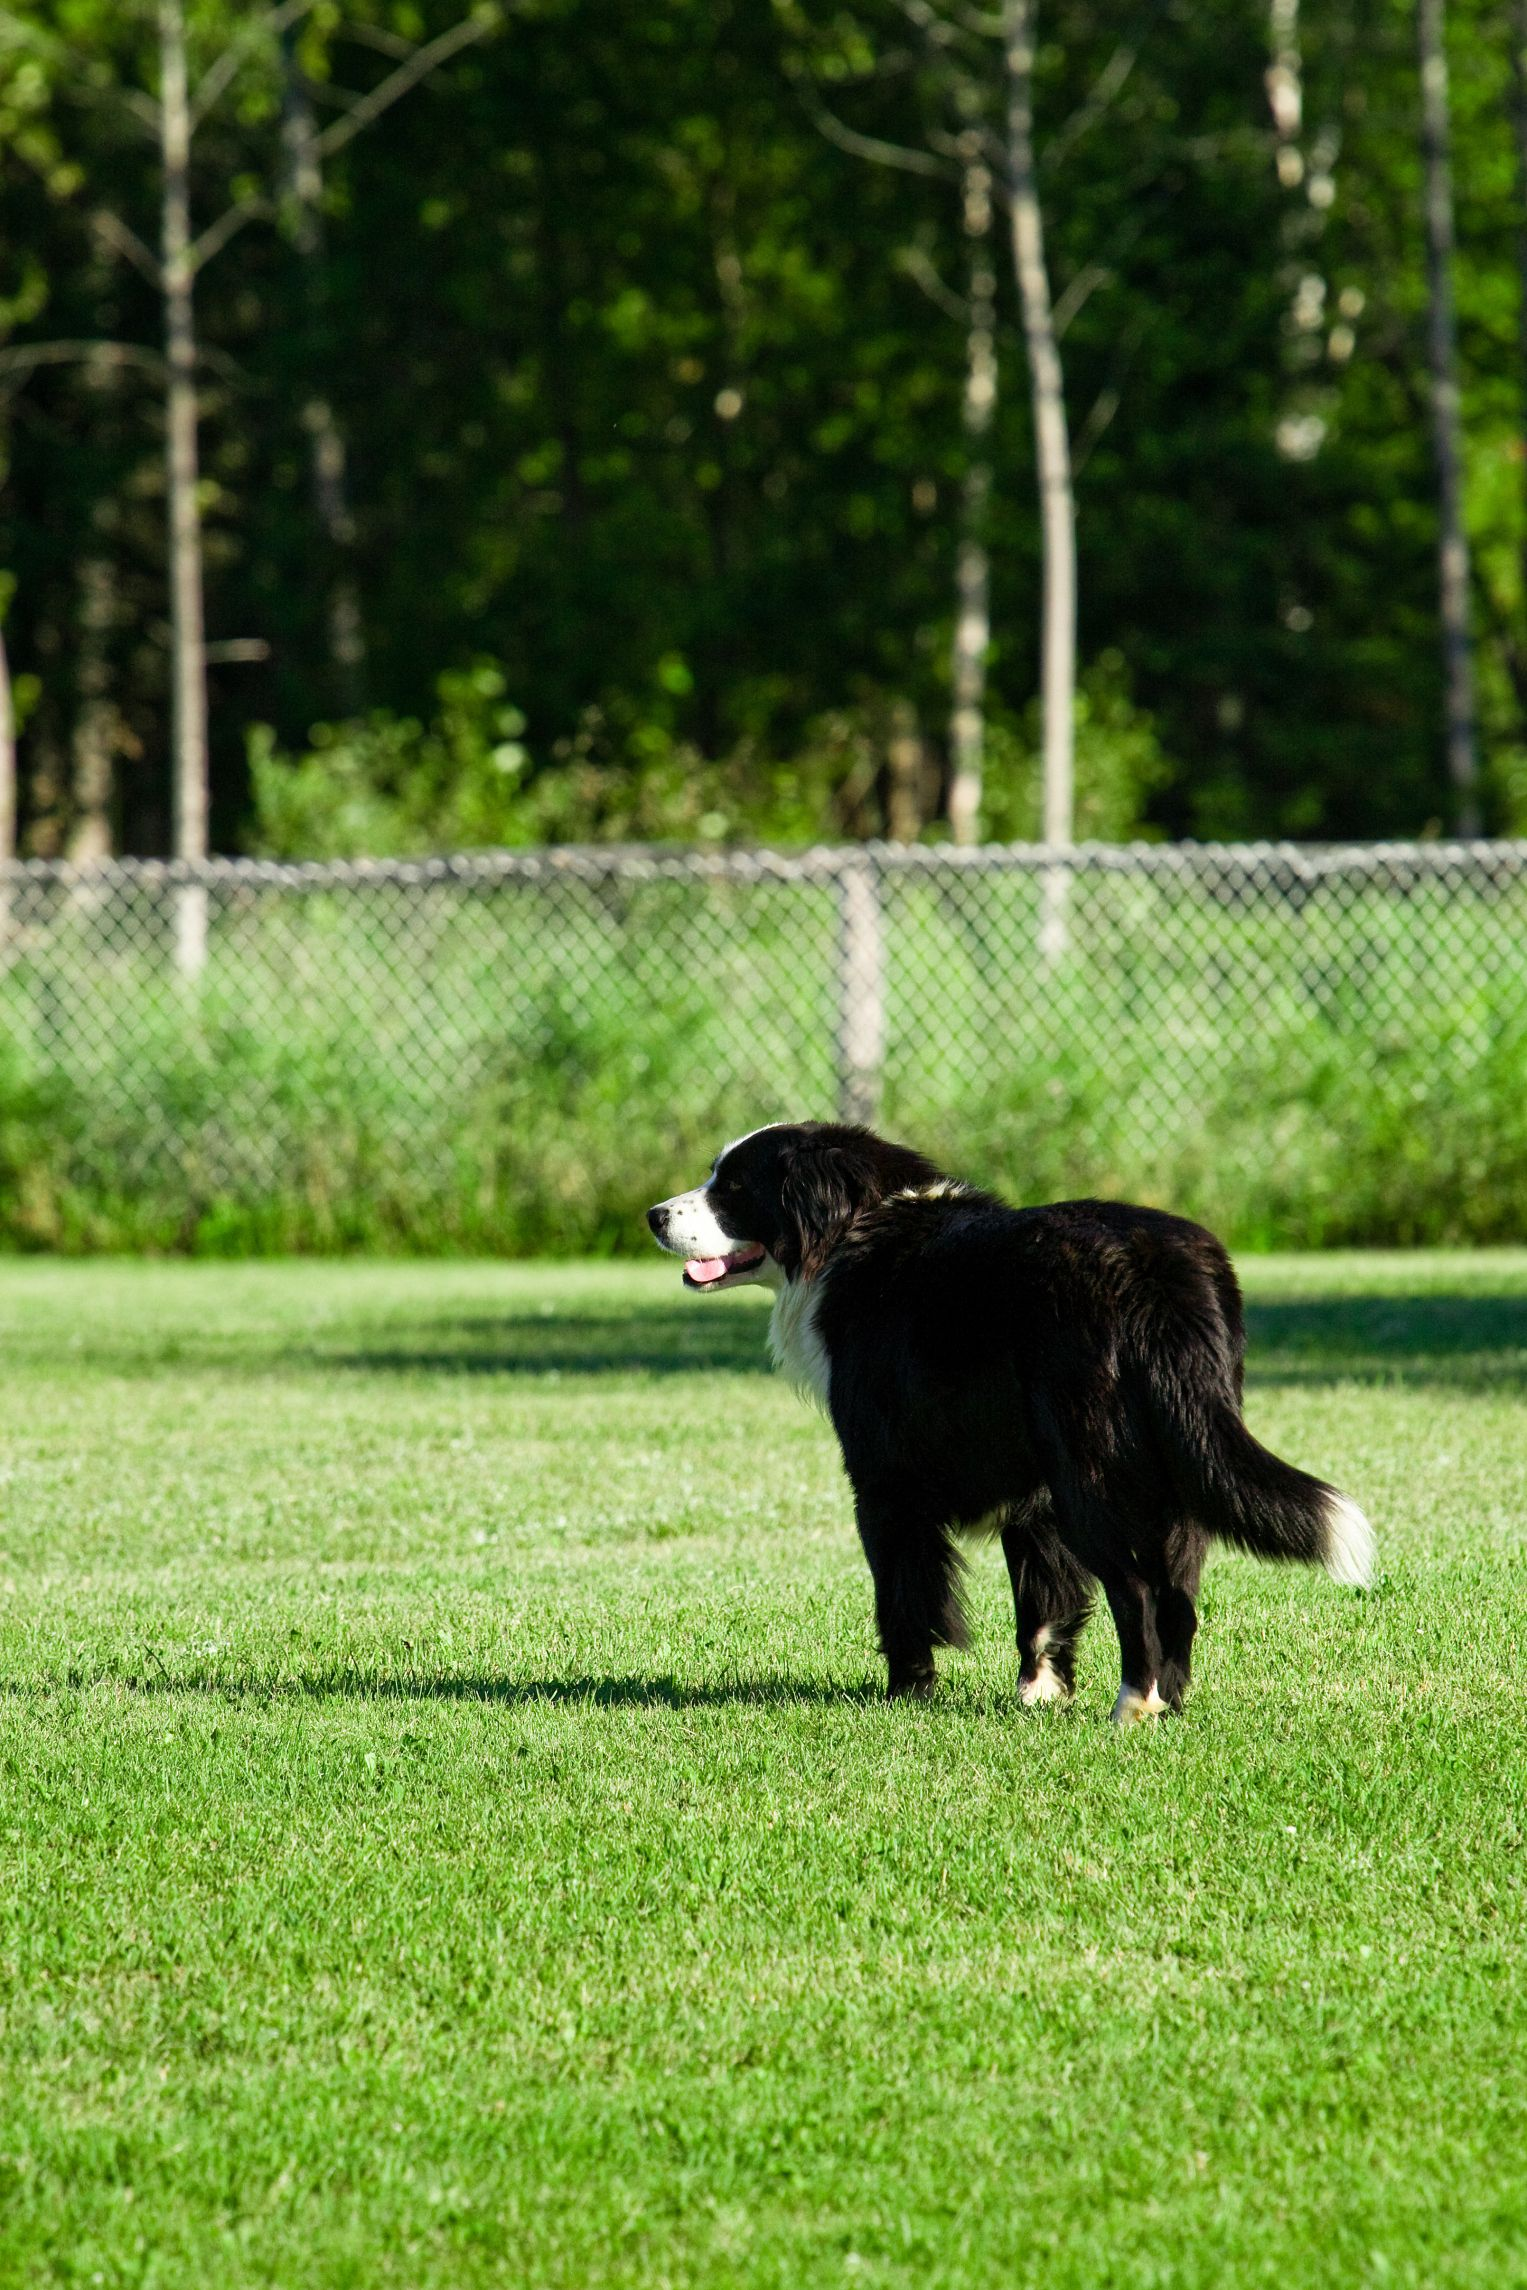 Dogs can cause serious damage to the lawn as urine and feces create dead areas and burned spots. Applying a safe, non-toxic repellent helps keeps animals at ...